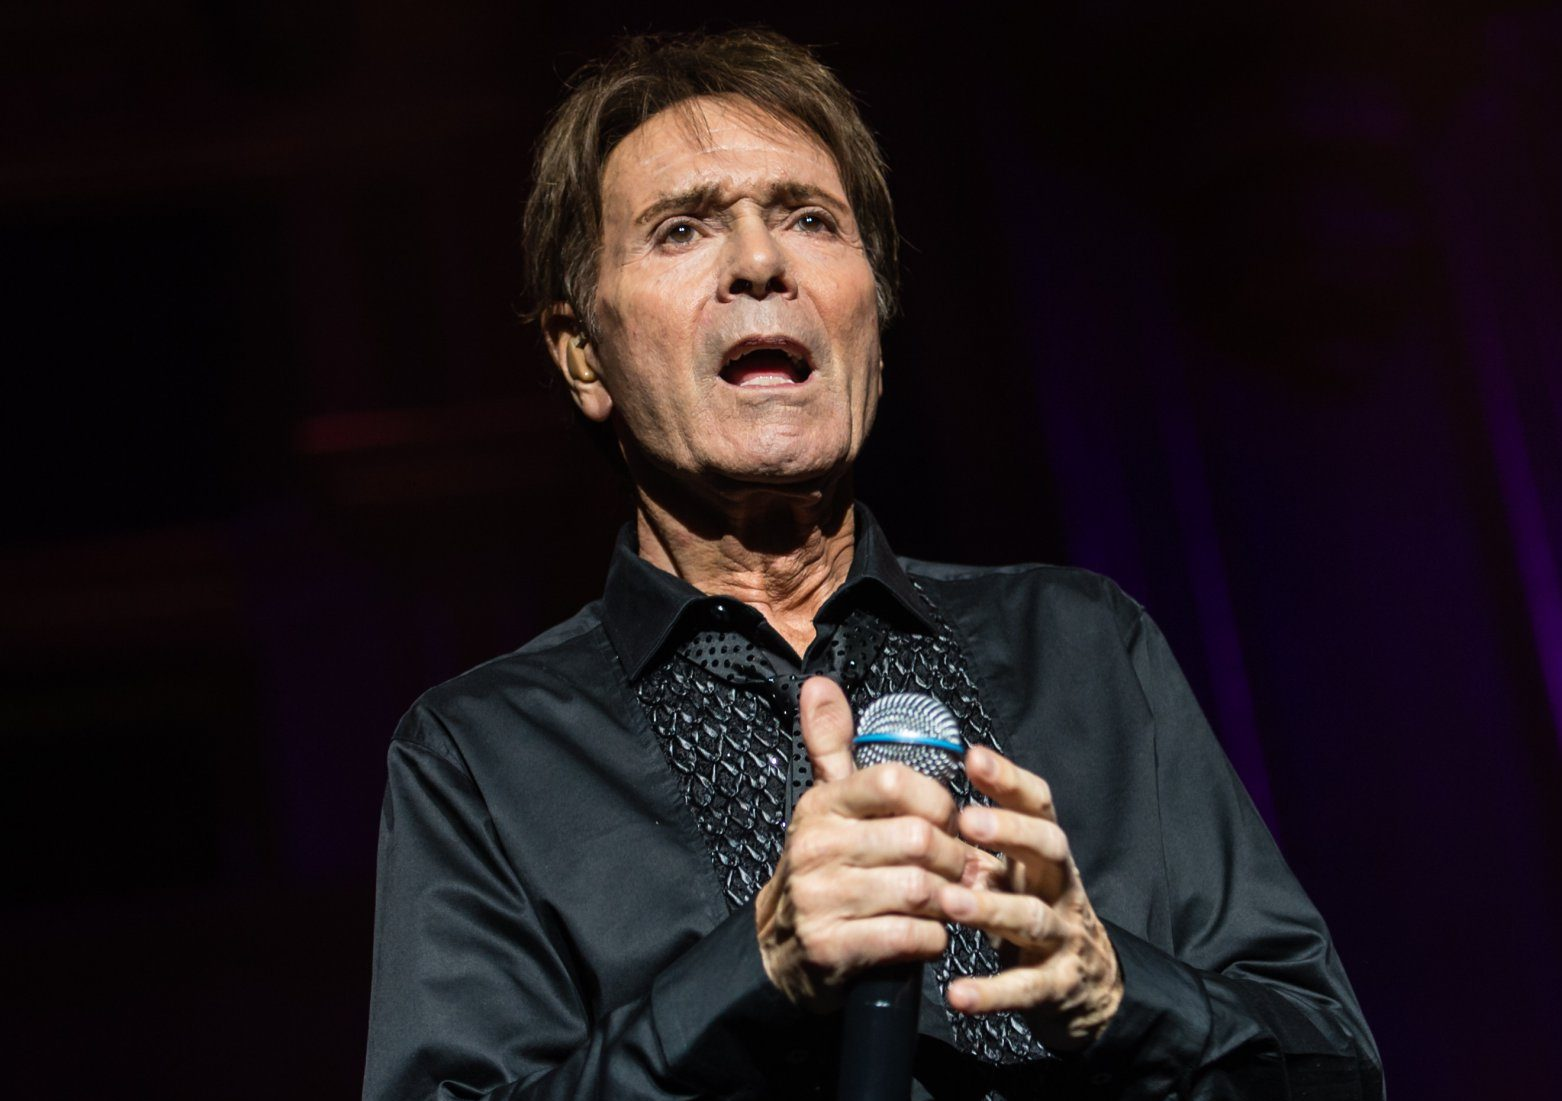 Mandatory Credit: Photo by Richard Isaac/REX (9931312e) Sir Cliff Richard - 58-18=60 Tour celebrating 60 year anniversary in the music business Sir Cliff Richard in concert at the Royal Albert Hall in London, UK - 14 Oct 2018